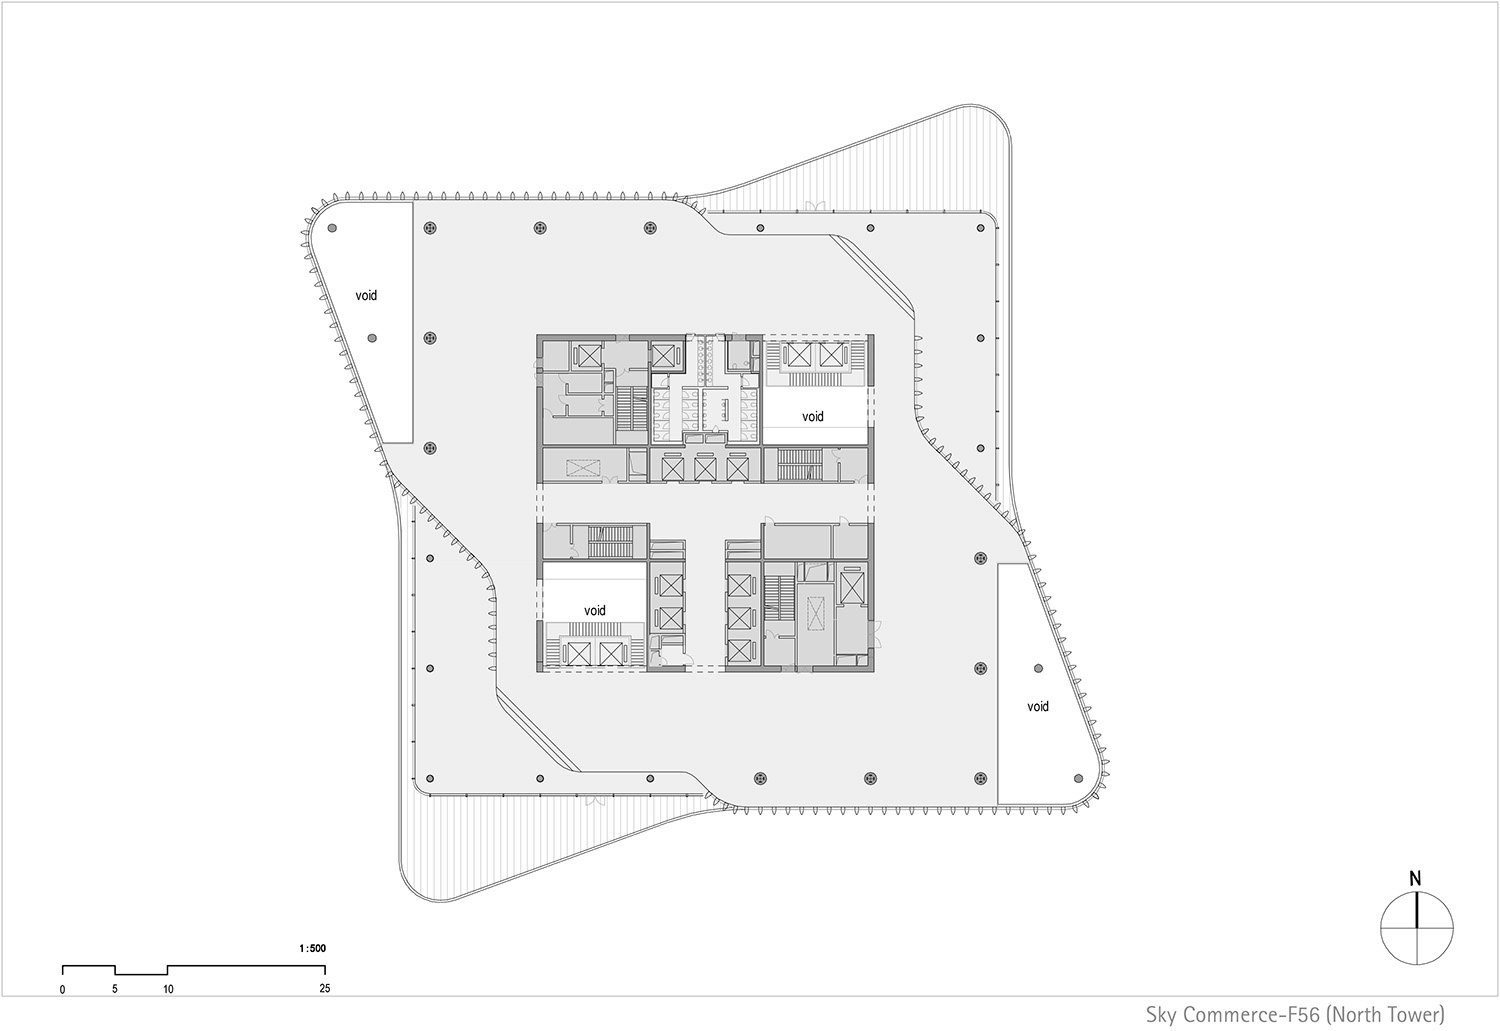 Floor plan north tower, level 56 © gmp Architects}